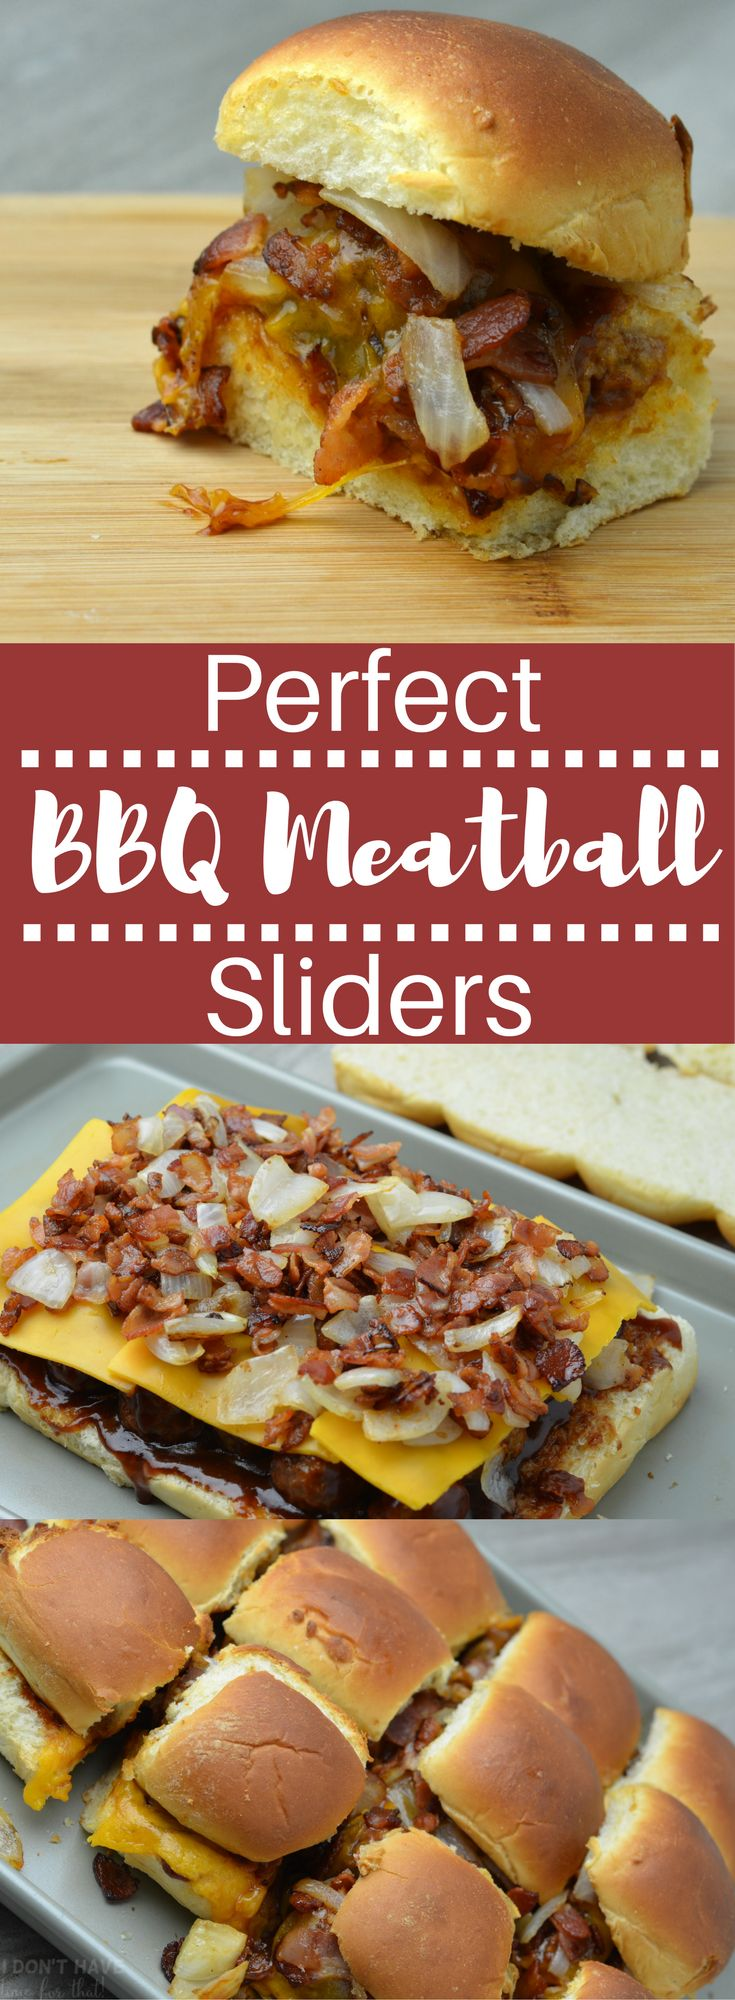 BBQ Meatball Sliders make great appetizers, especially for parties that overlap mealtimes and you don't want to prepare a sit-down meal!